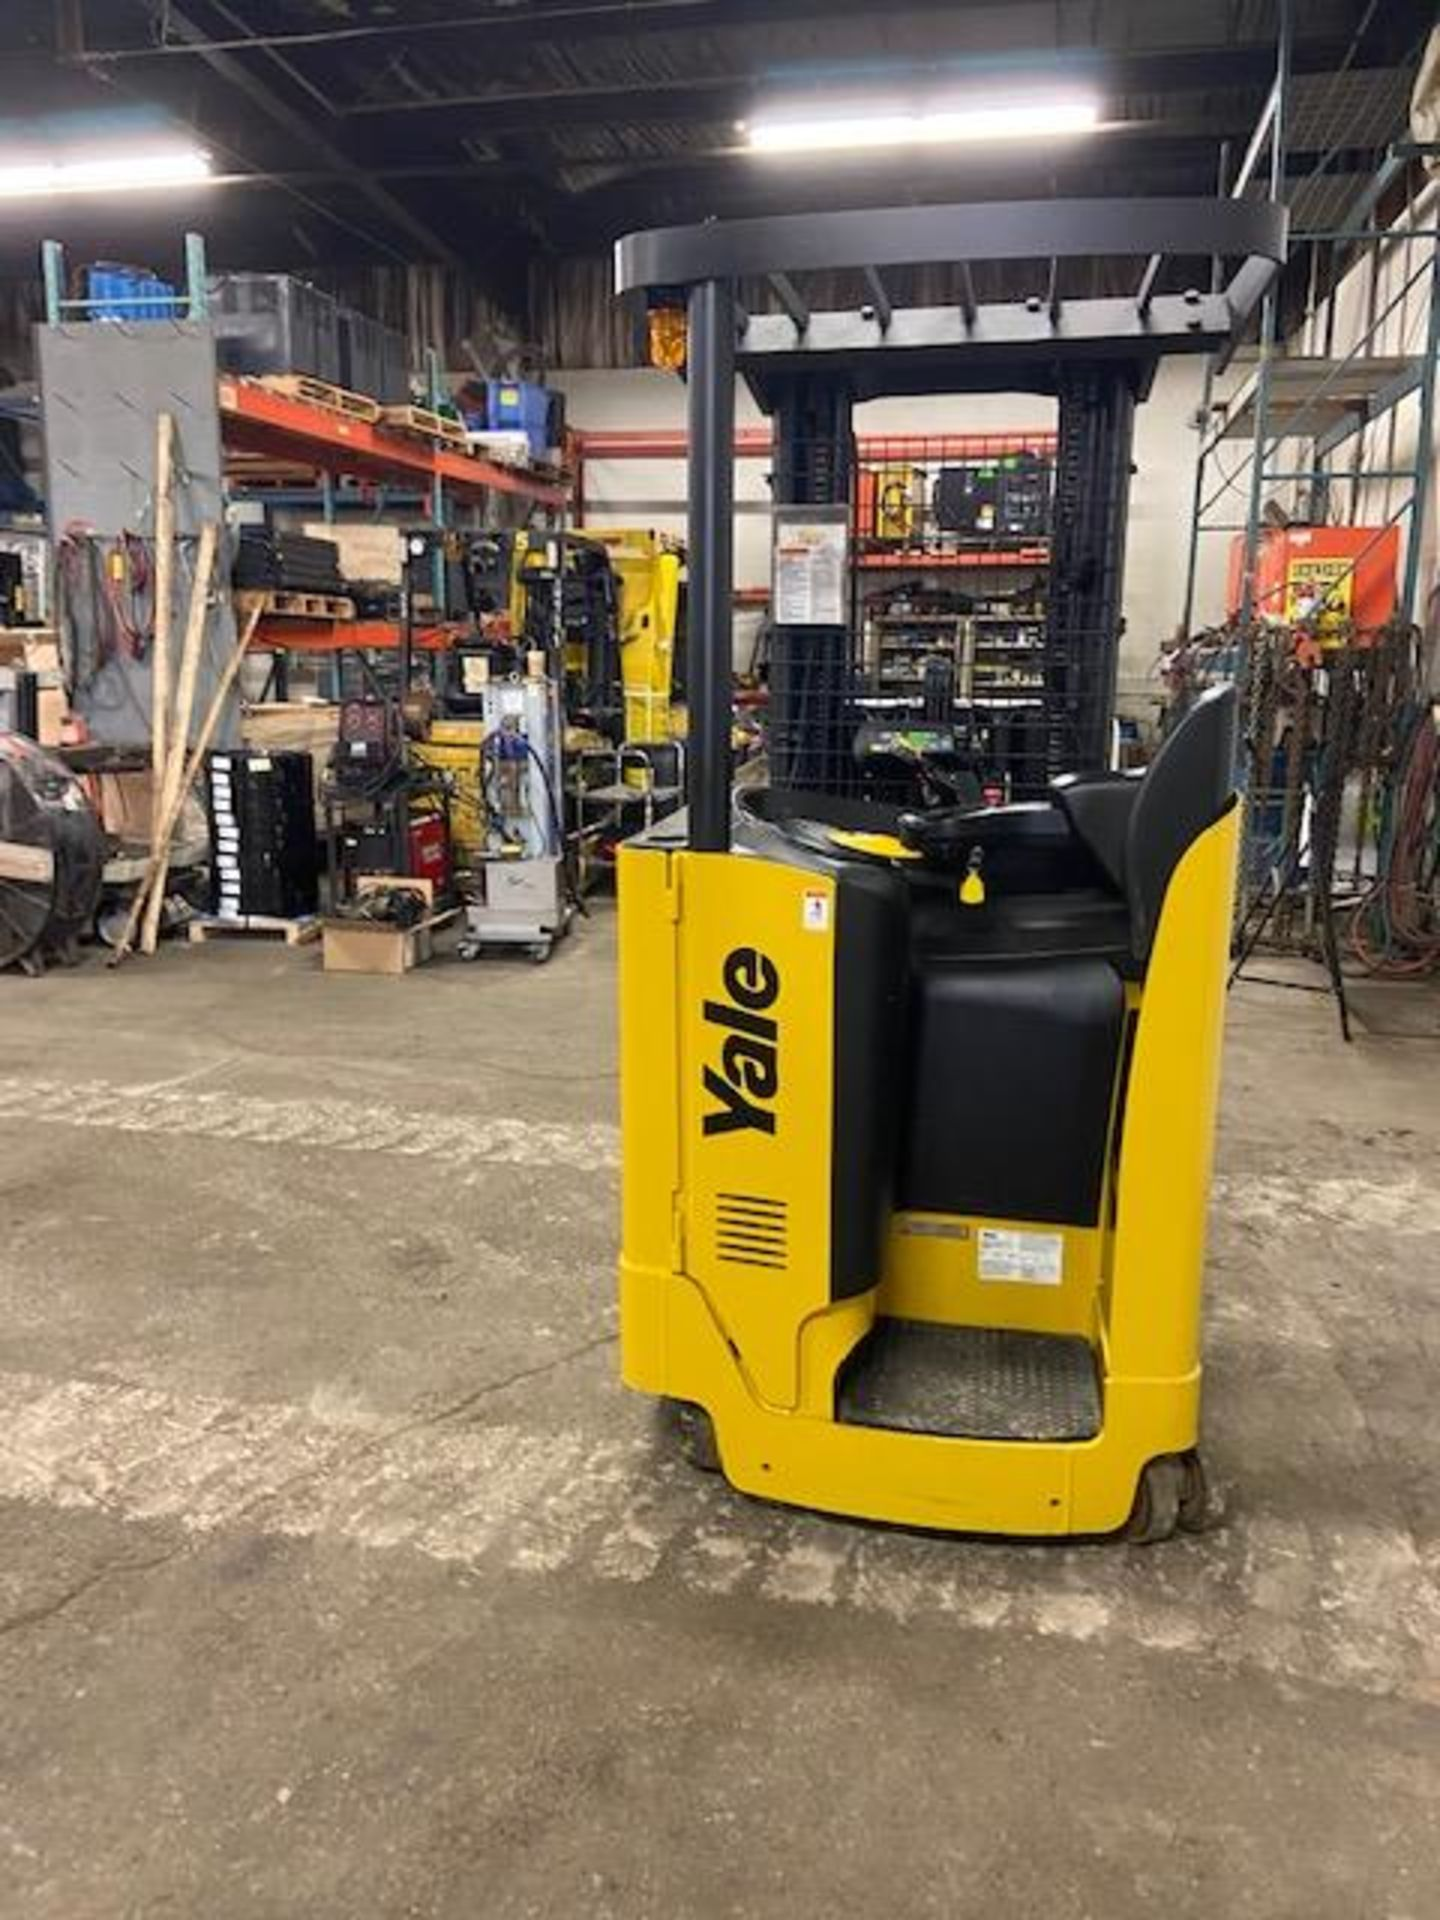 FREE CUSTOMS - Yale Reach Truck Pallet Lifter REACH TRUCK electric 4000lbs with sideshift 3-stage - Image 7 of 7